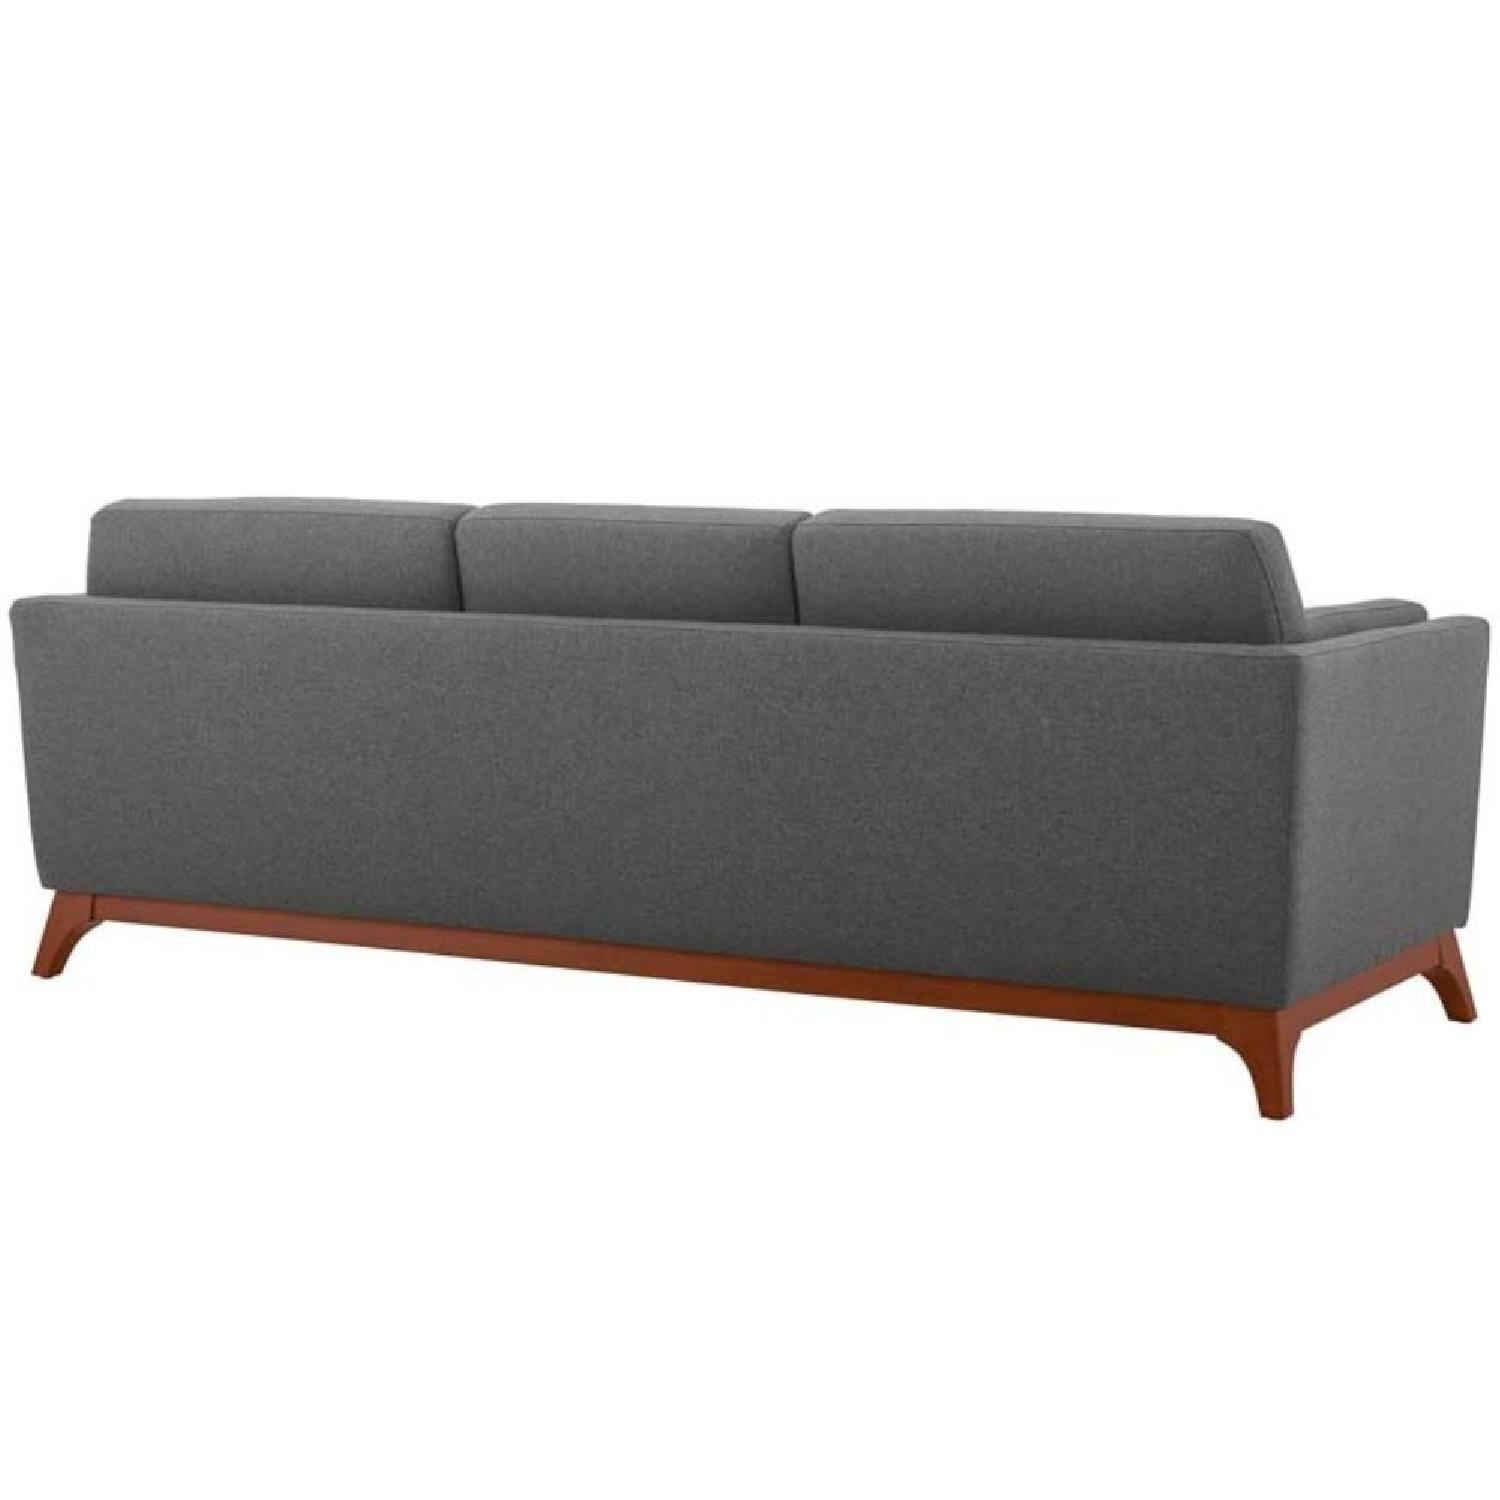 Grey Upholstered Fabric Sofa-2